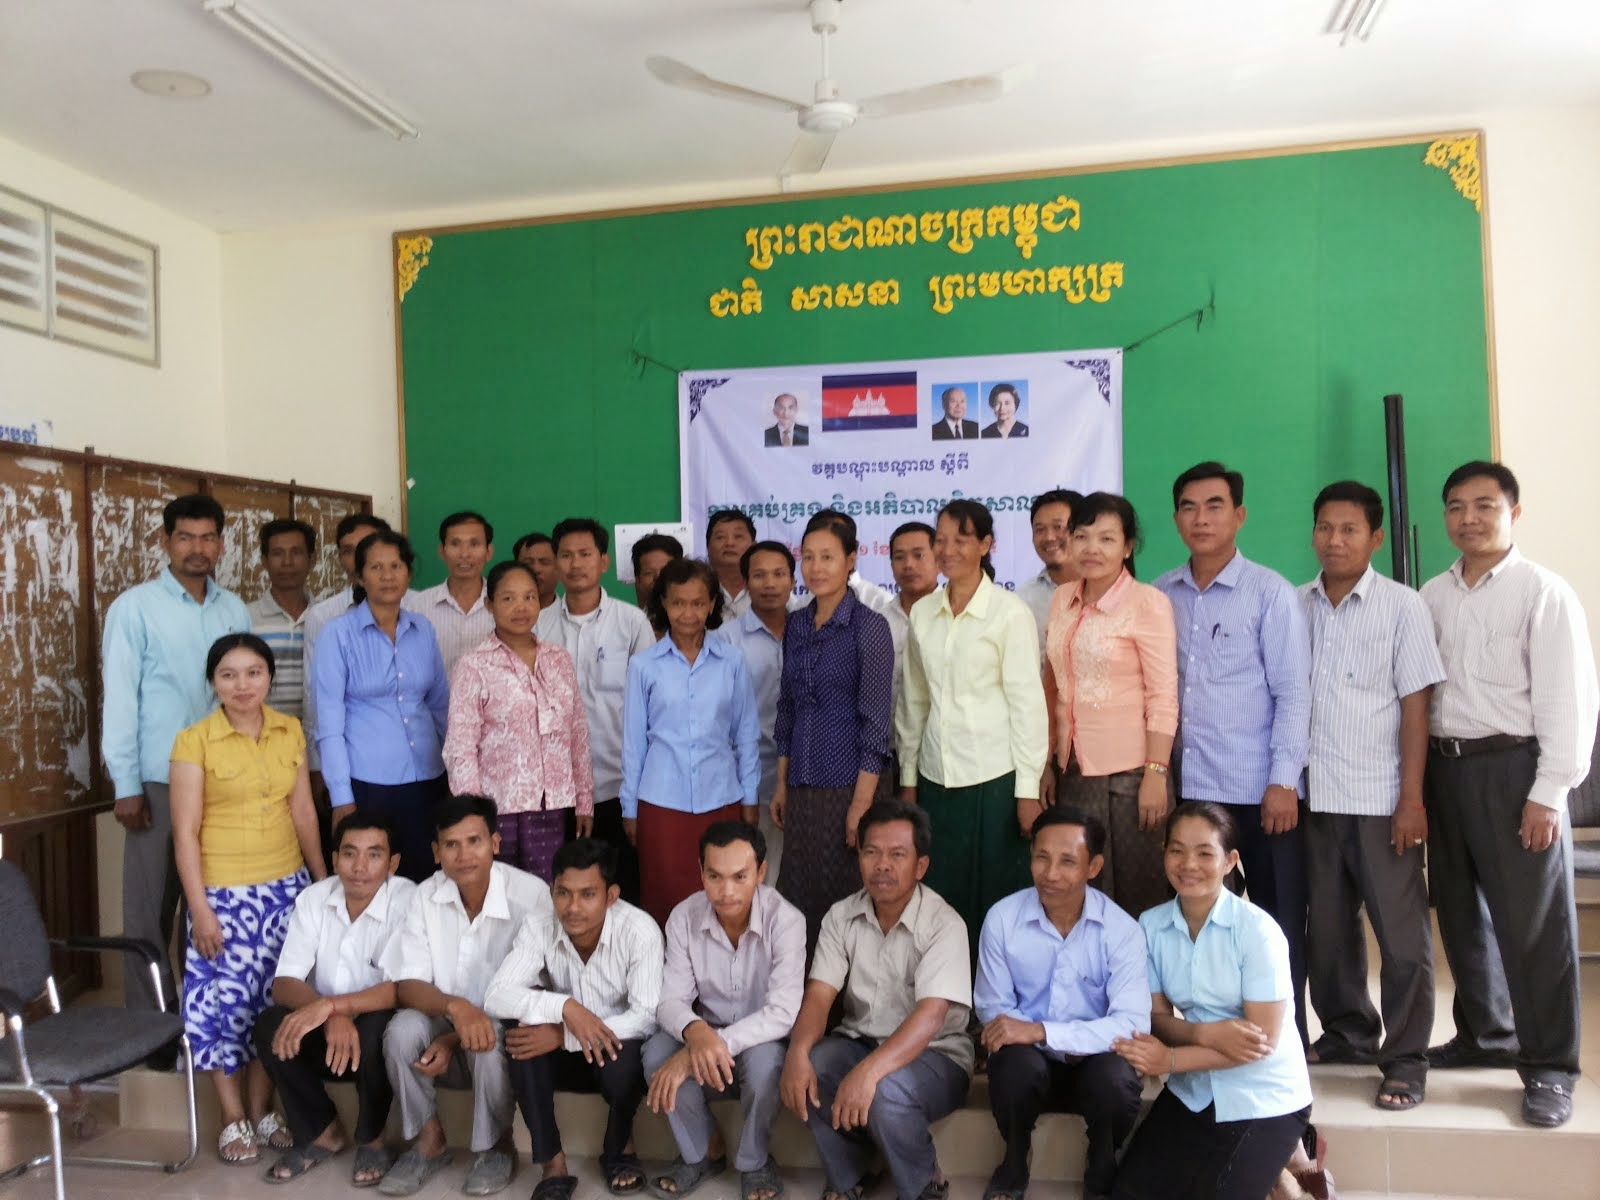 School governance and management on 29-31 October 2014 in Kratie province.